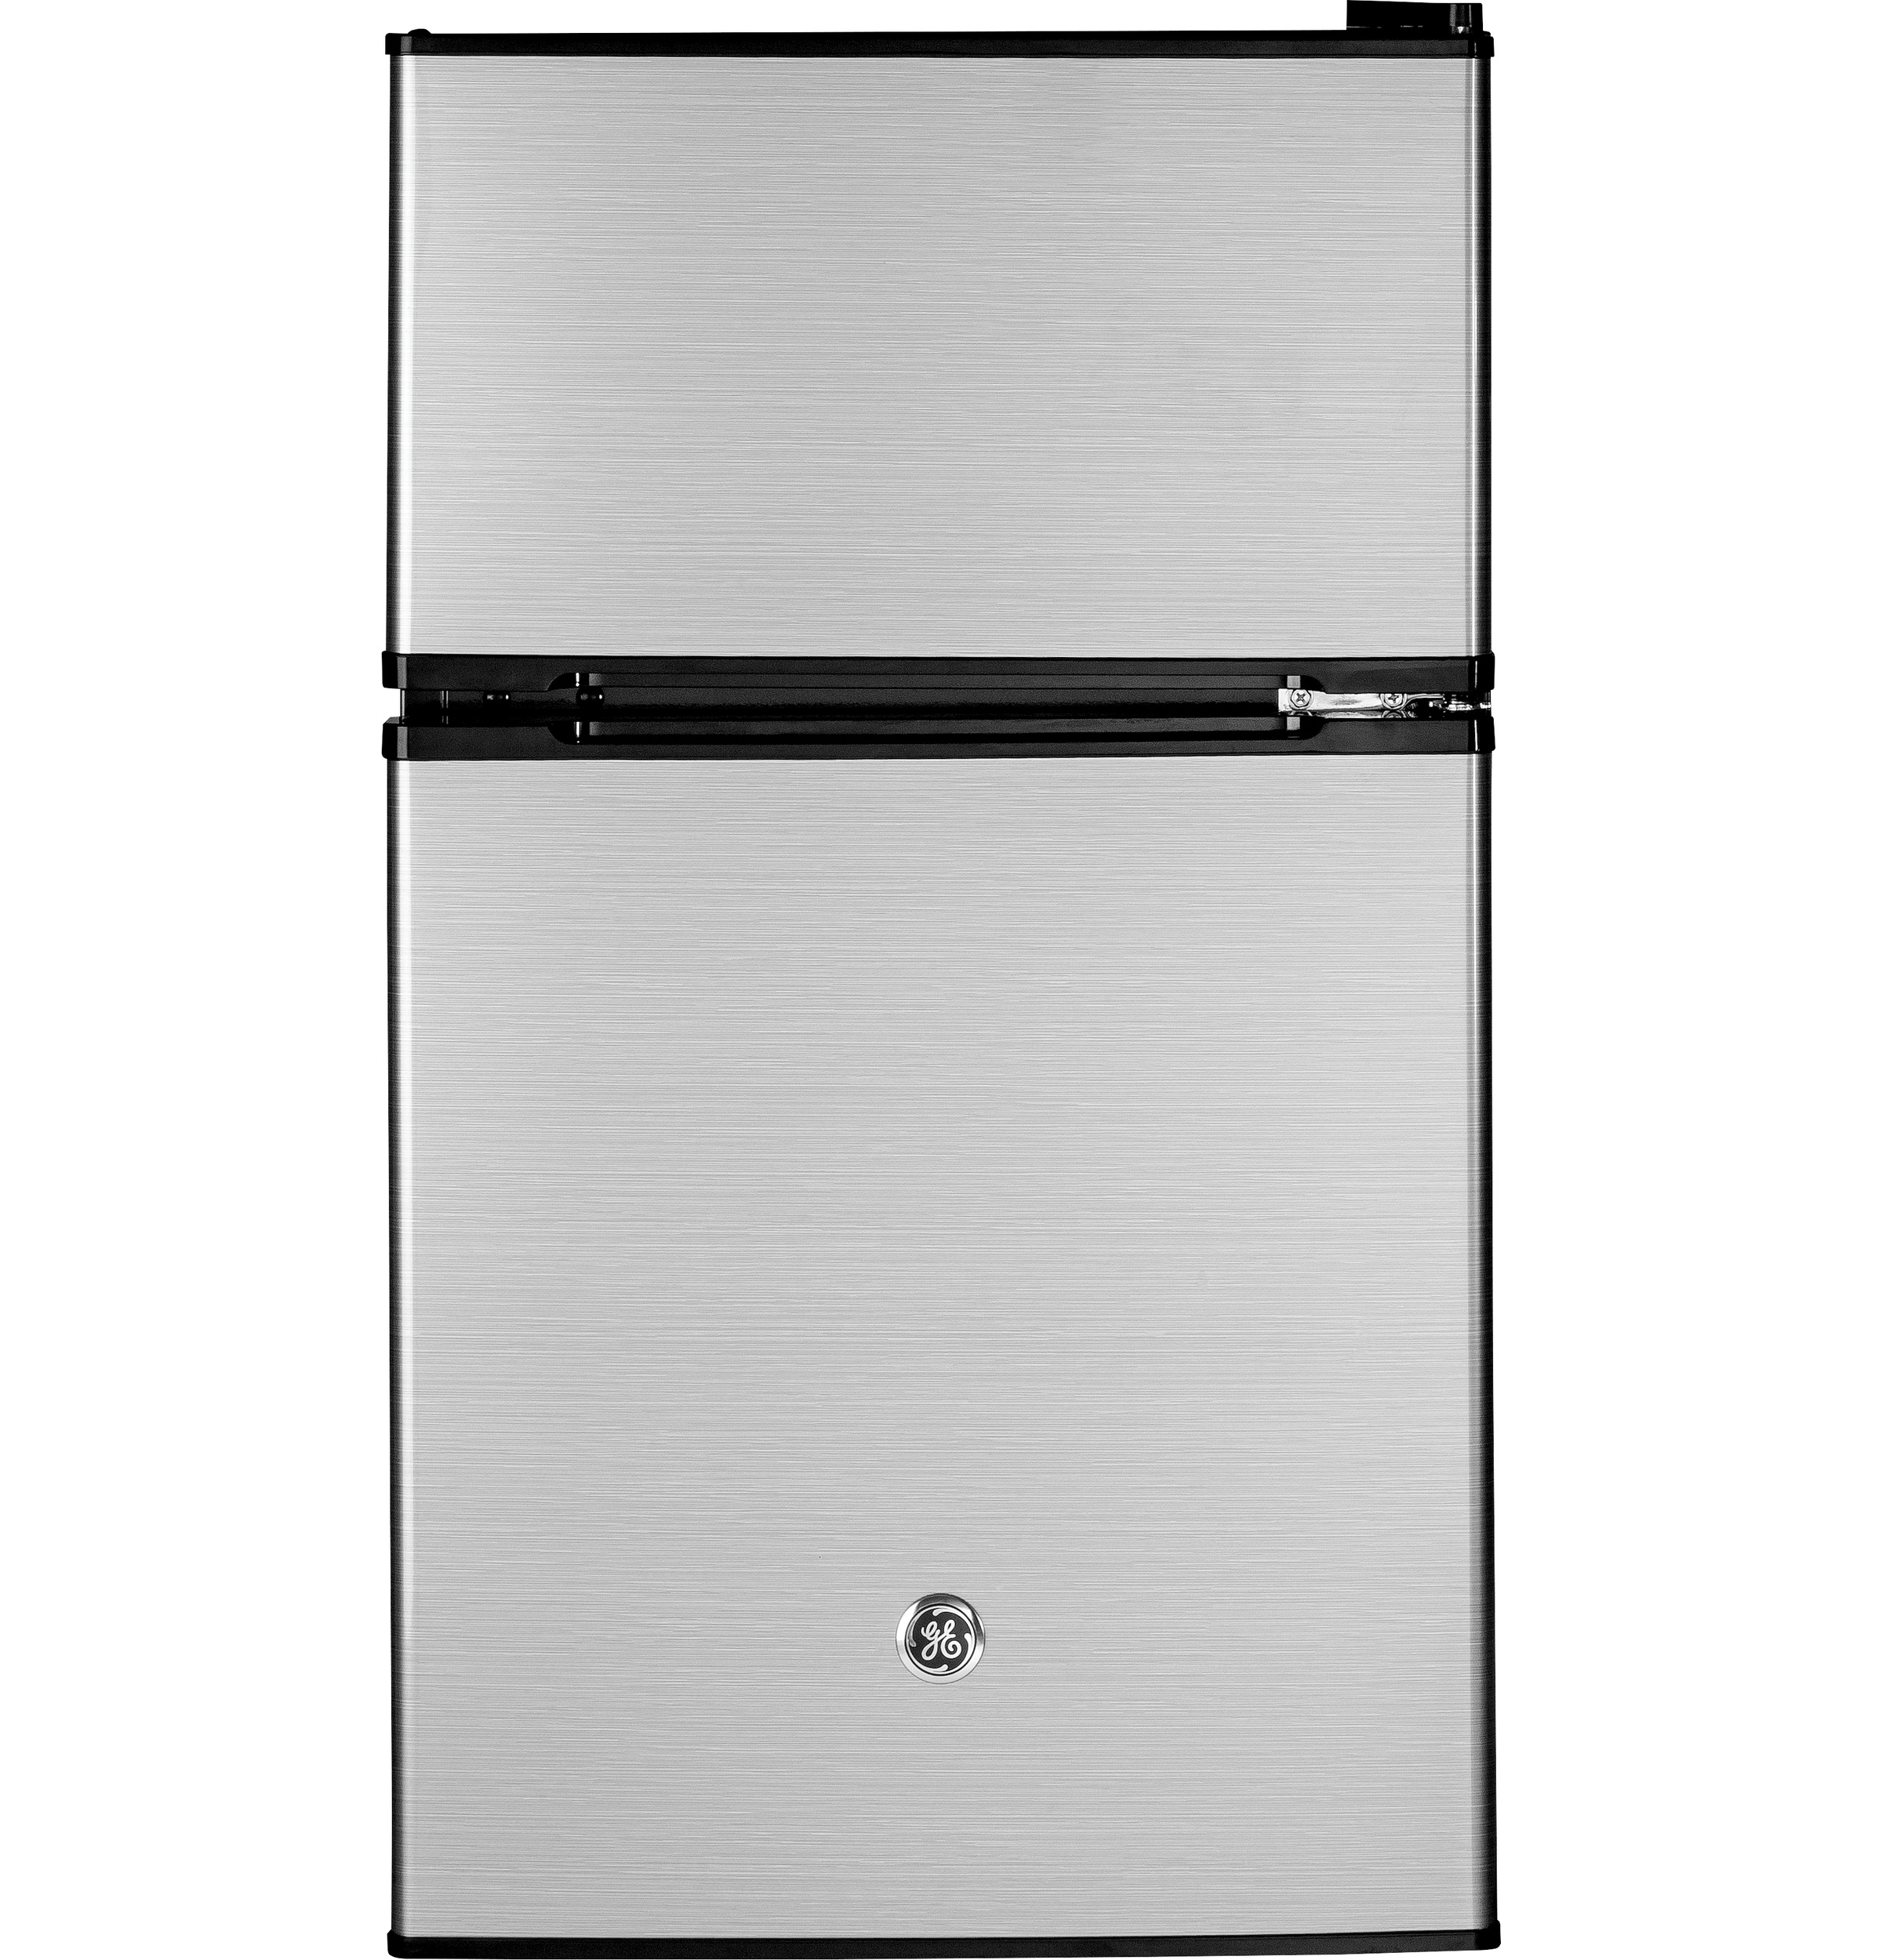 GE 3.1 cu. ft Double-Door Compact Refrigerator, Clean Steel